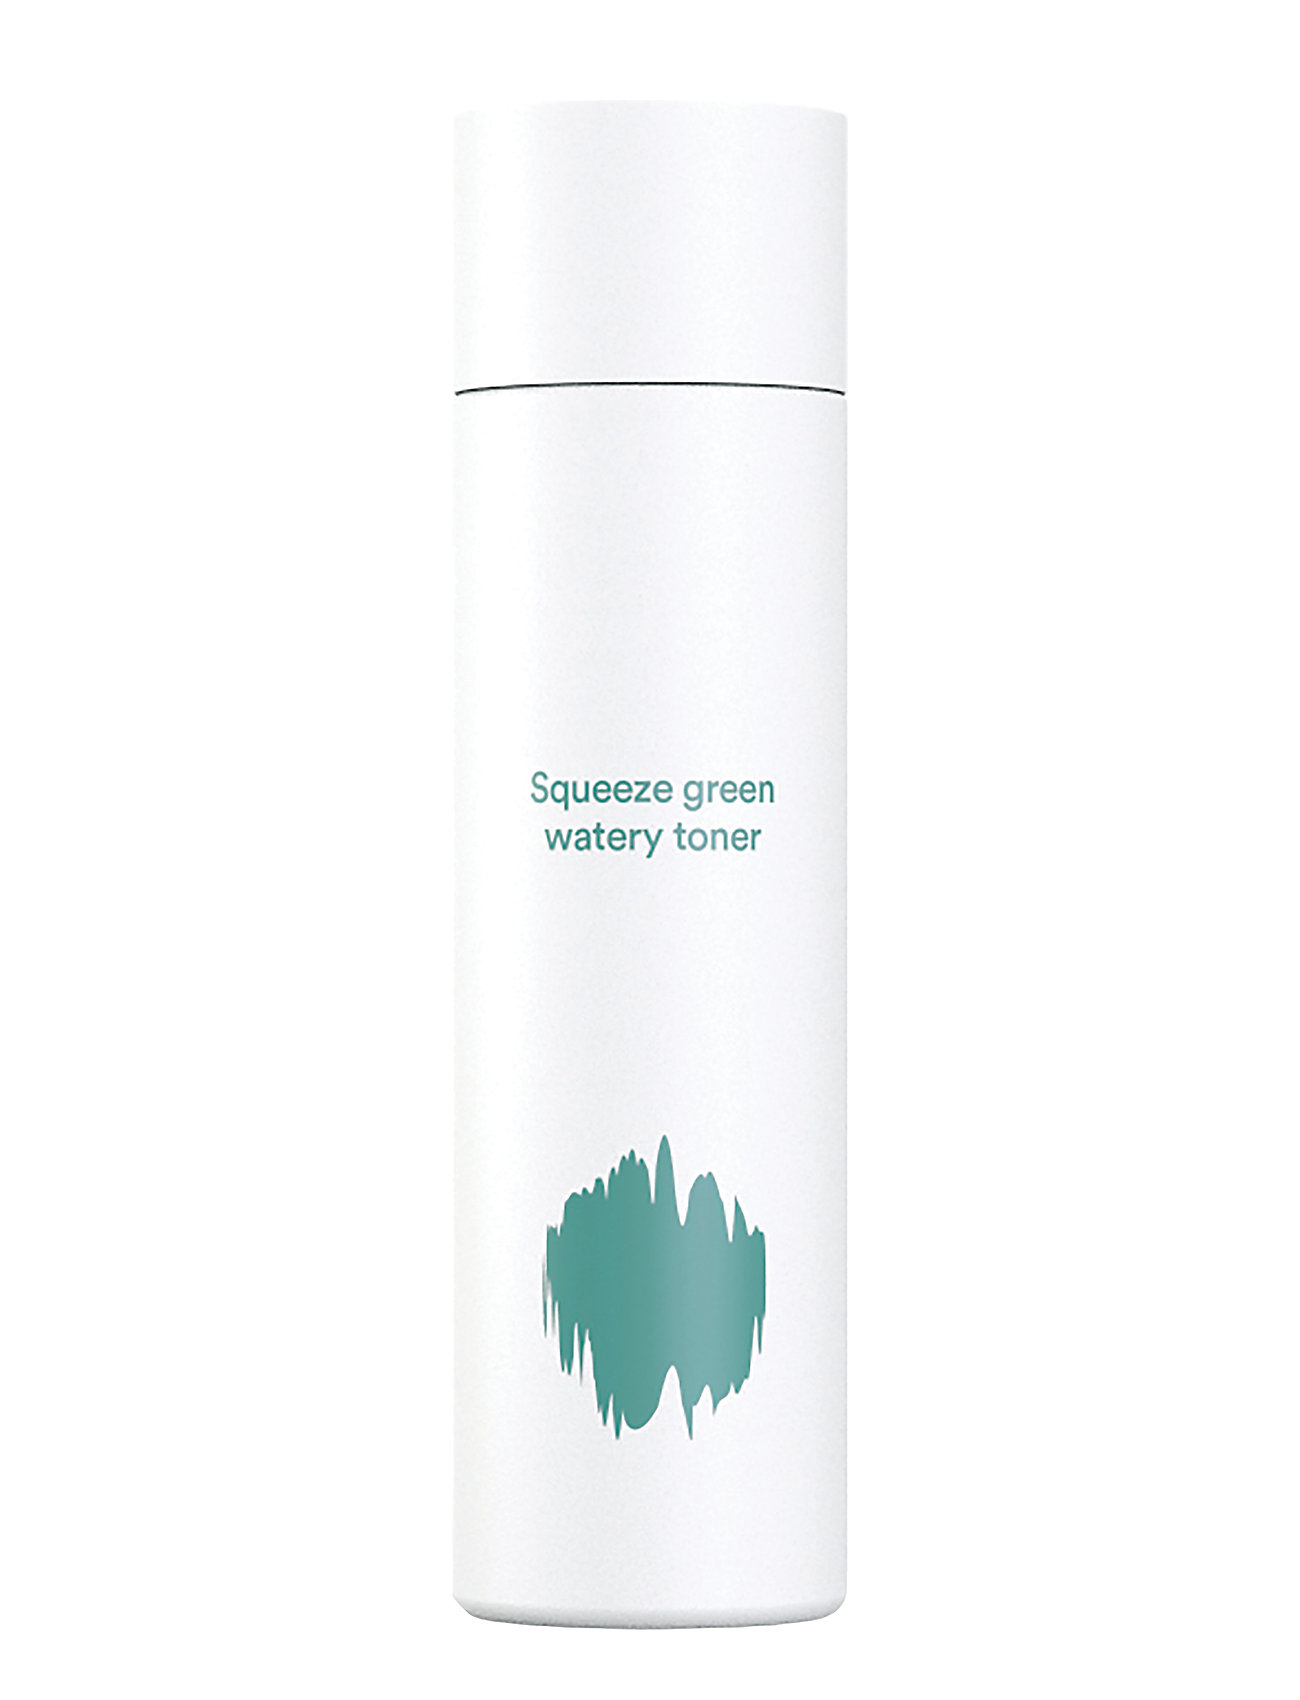 E NATURE E NATURE Squeeze green watery  Toner - CLEAR